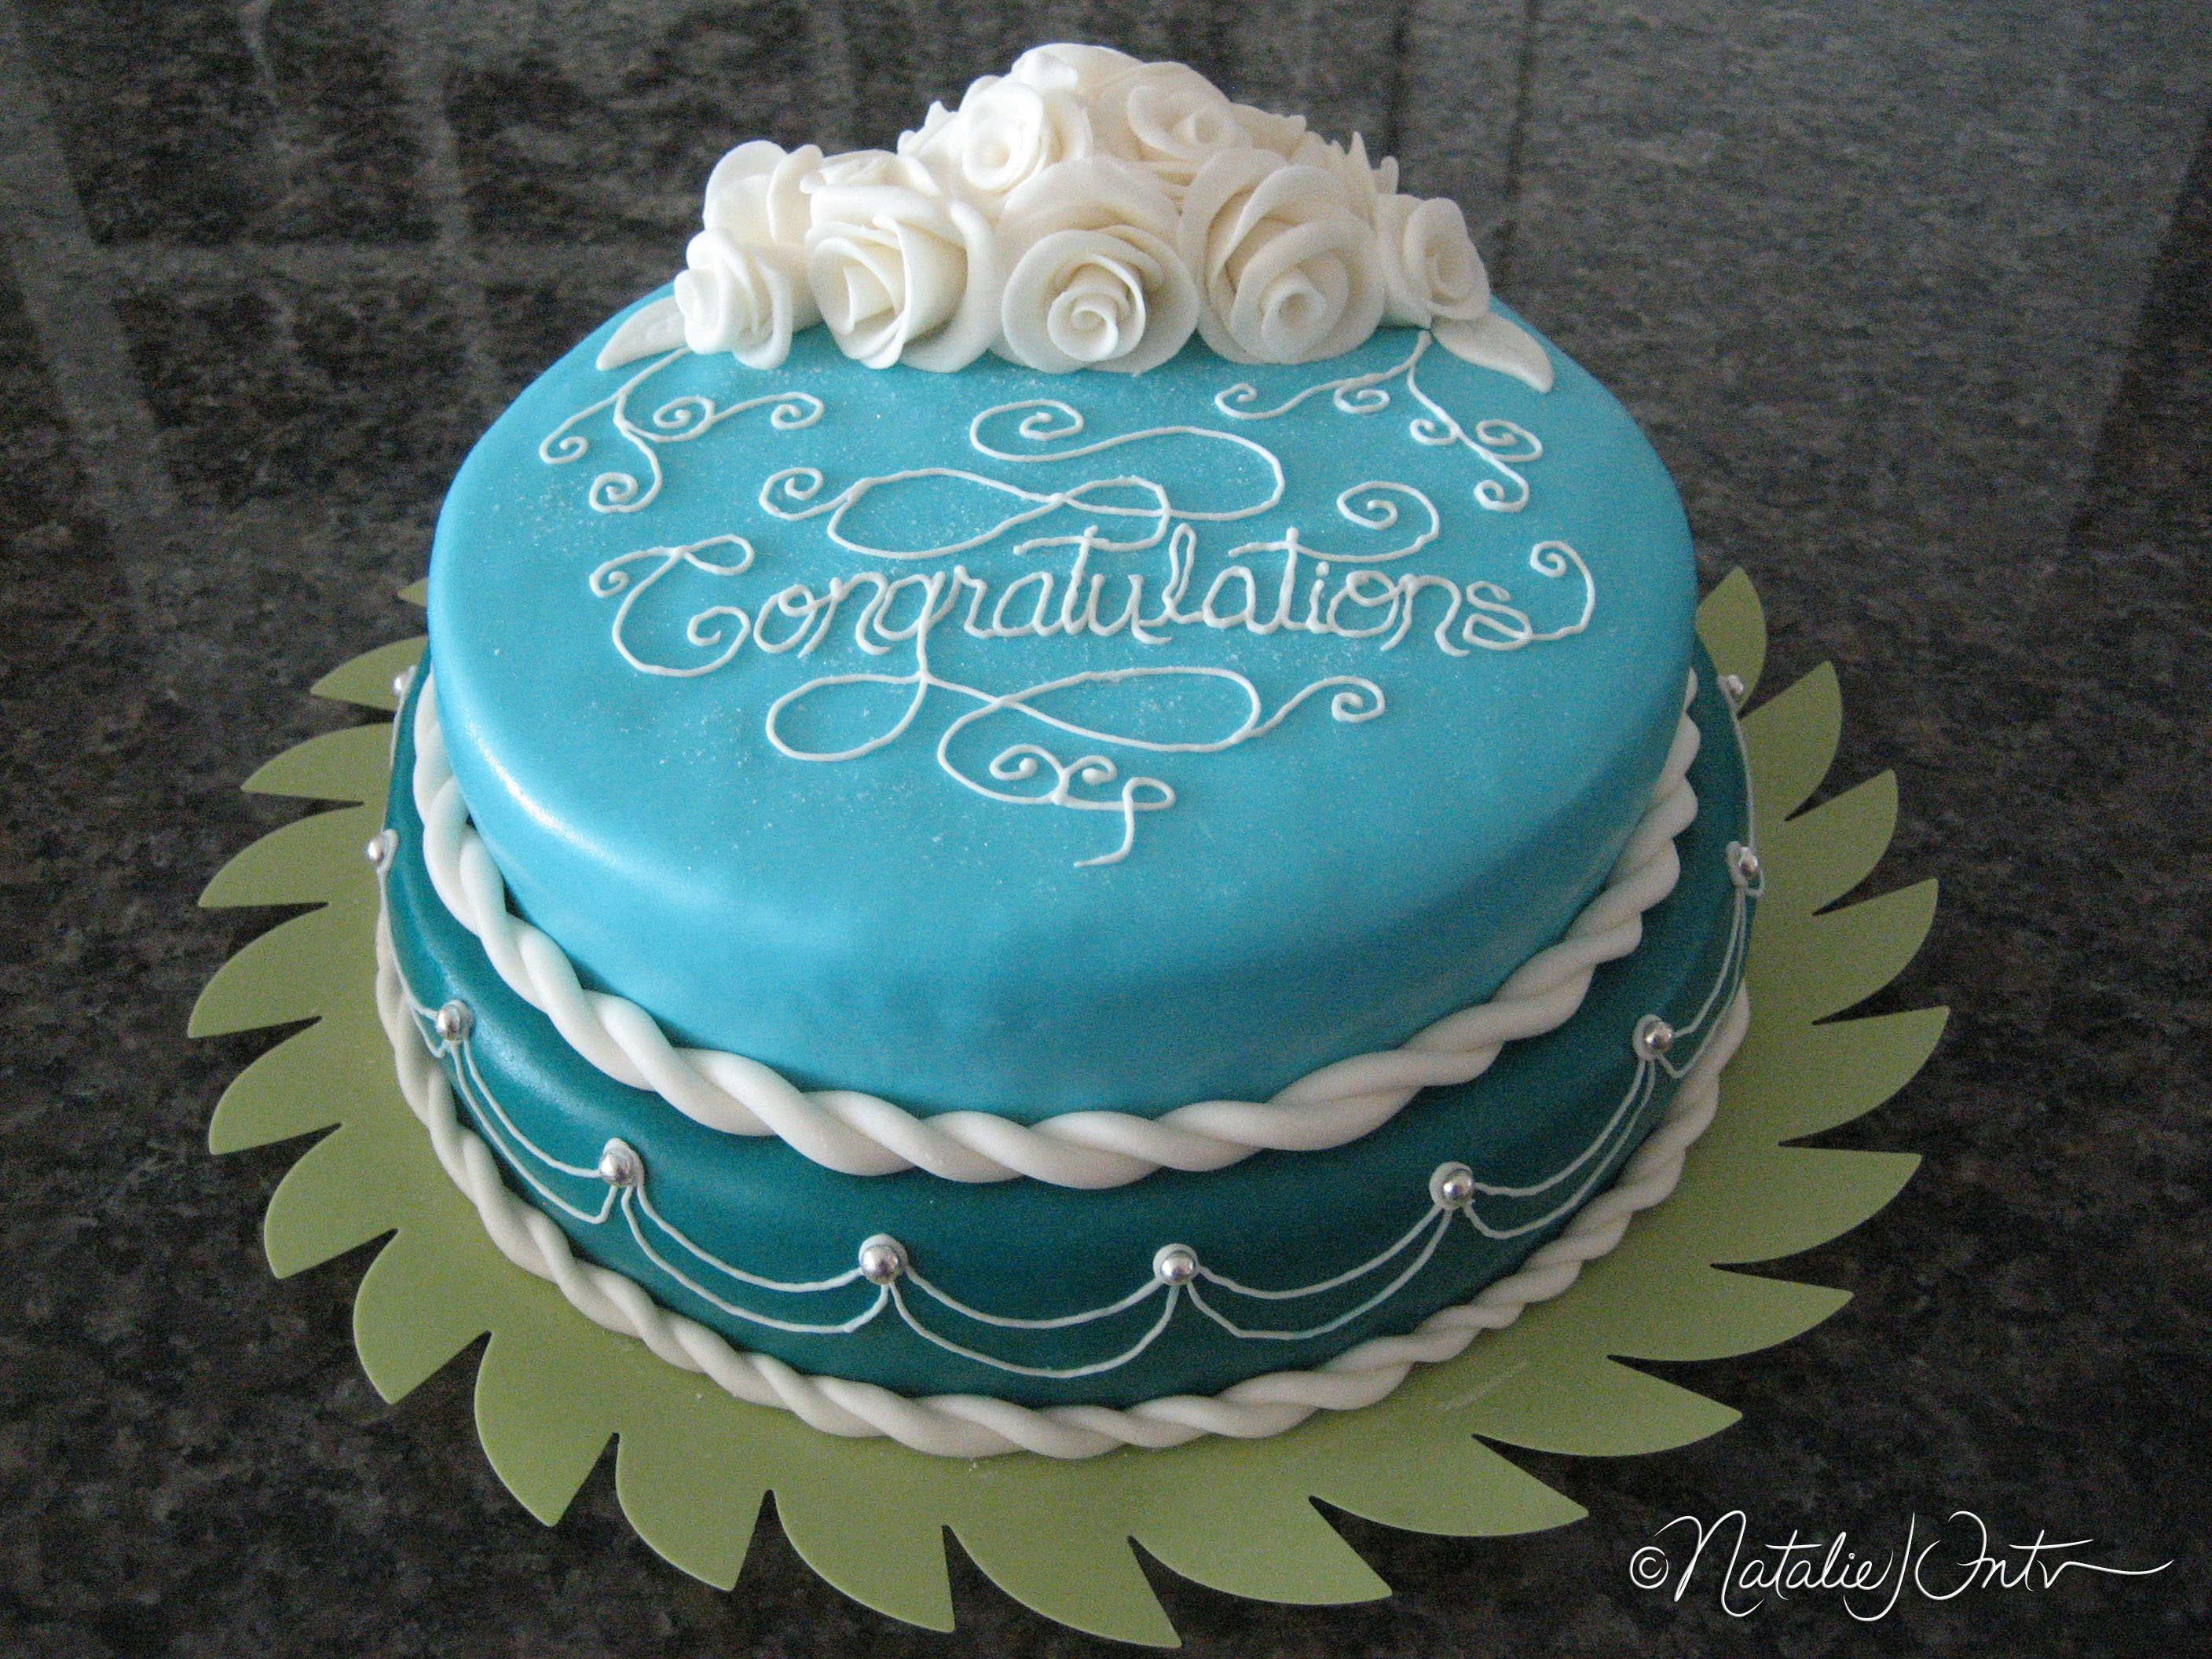 Congratulation Cake Pic With Name